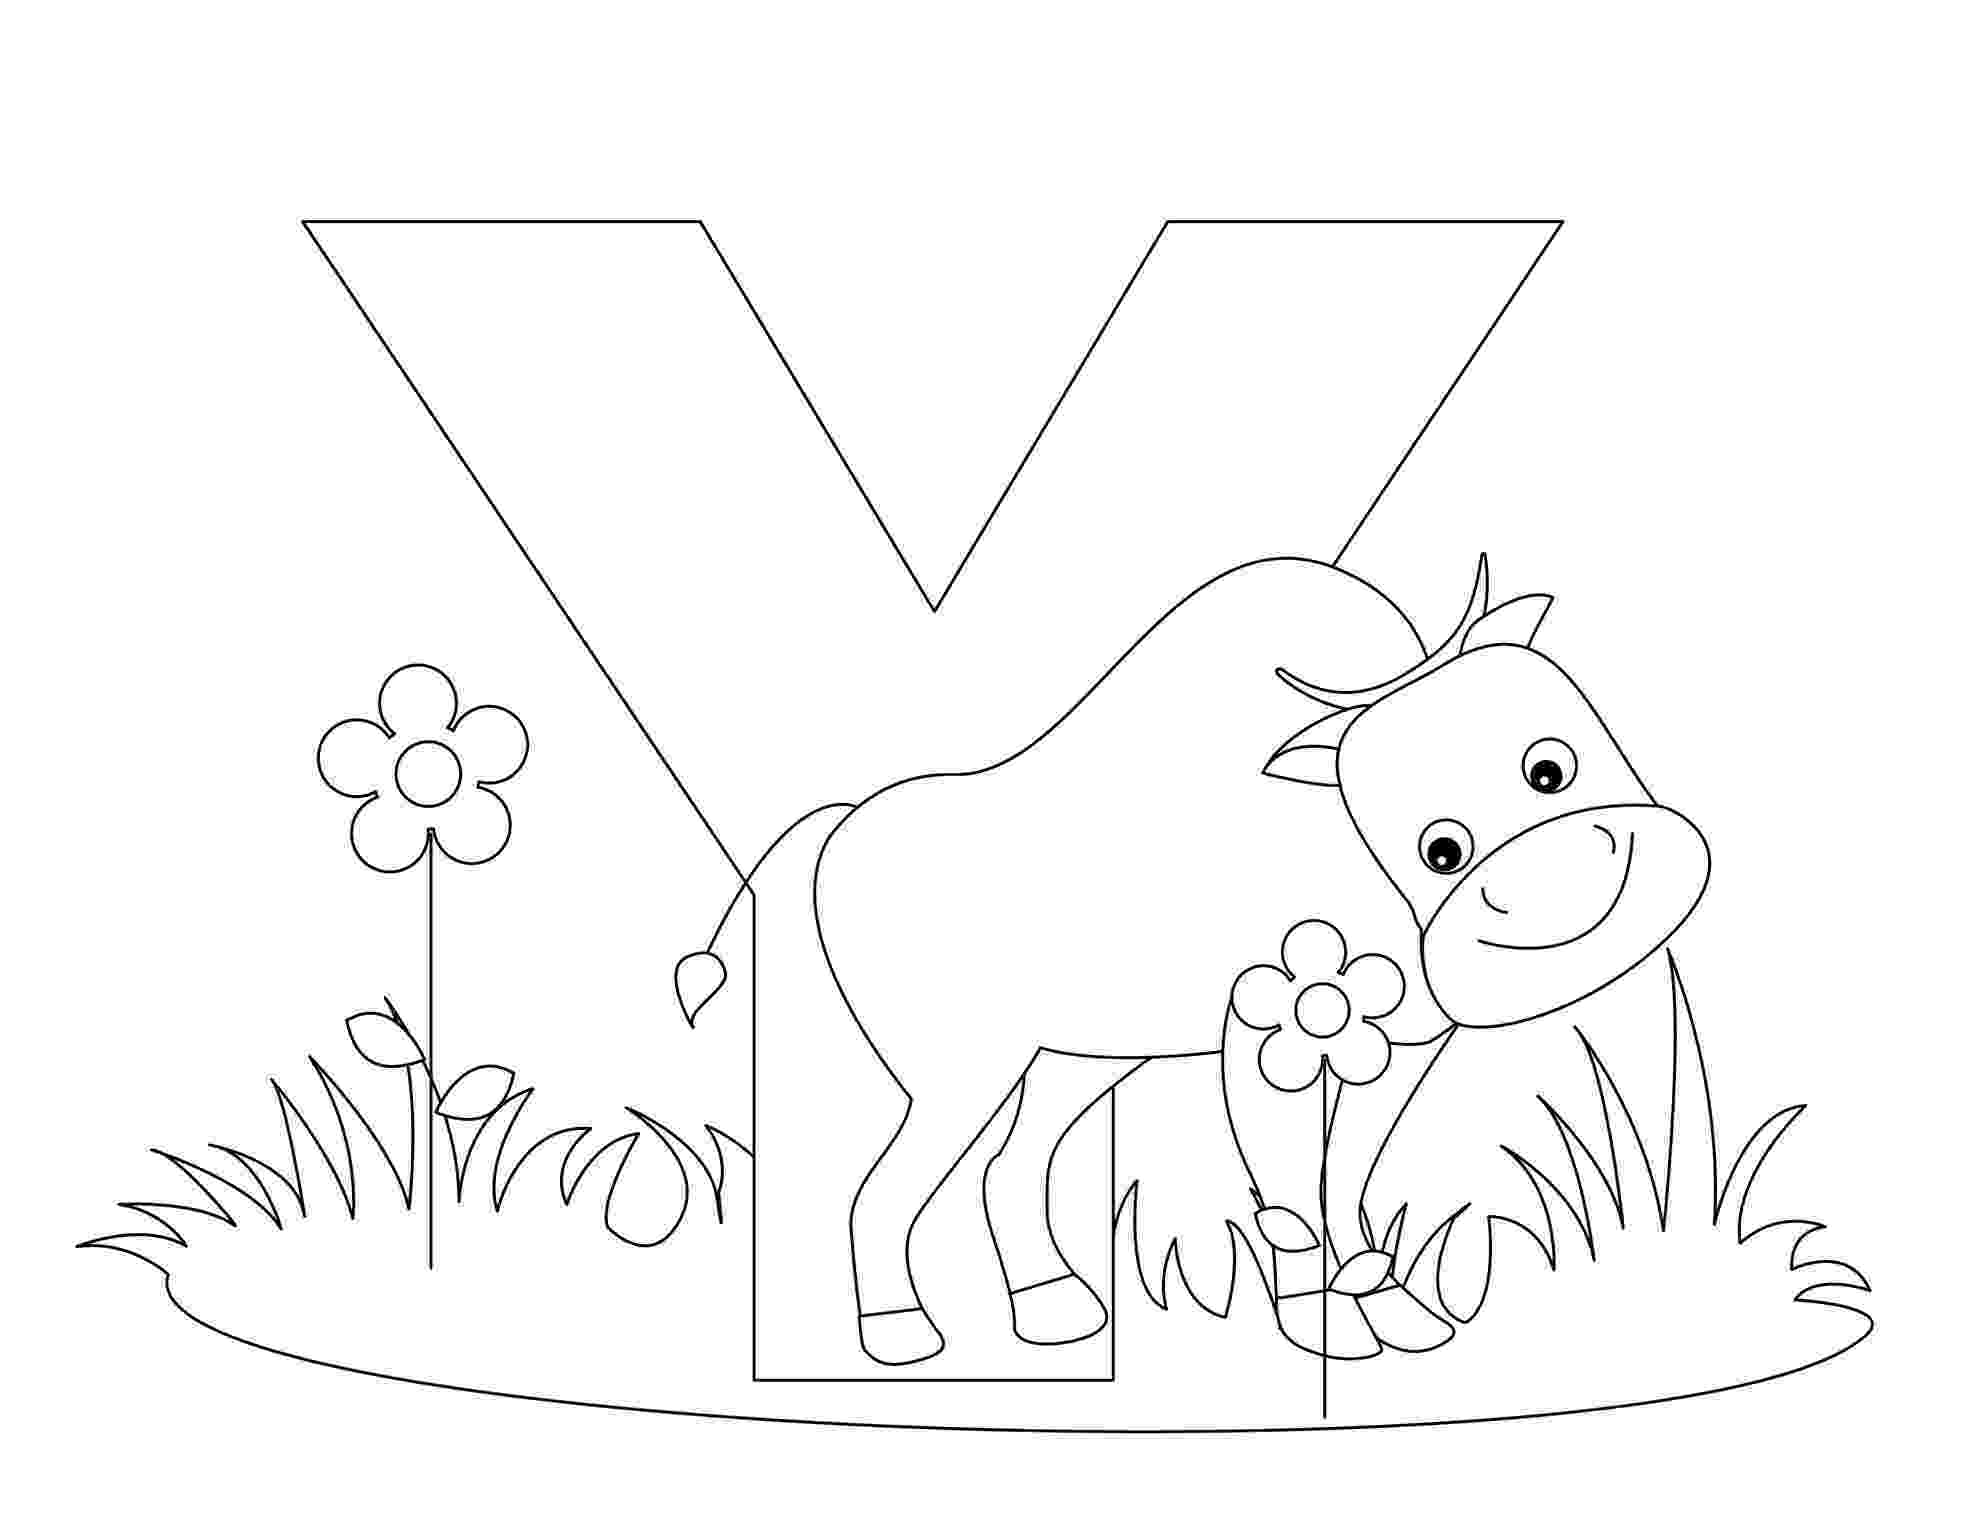 alphabet coloring pages for preschoolers free printable alphabet coloring pages for kids best pages for preschoolers alphabet coloring